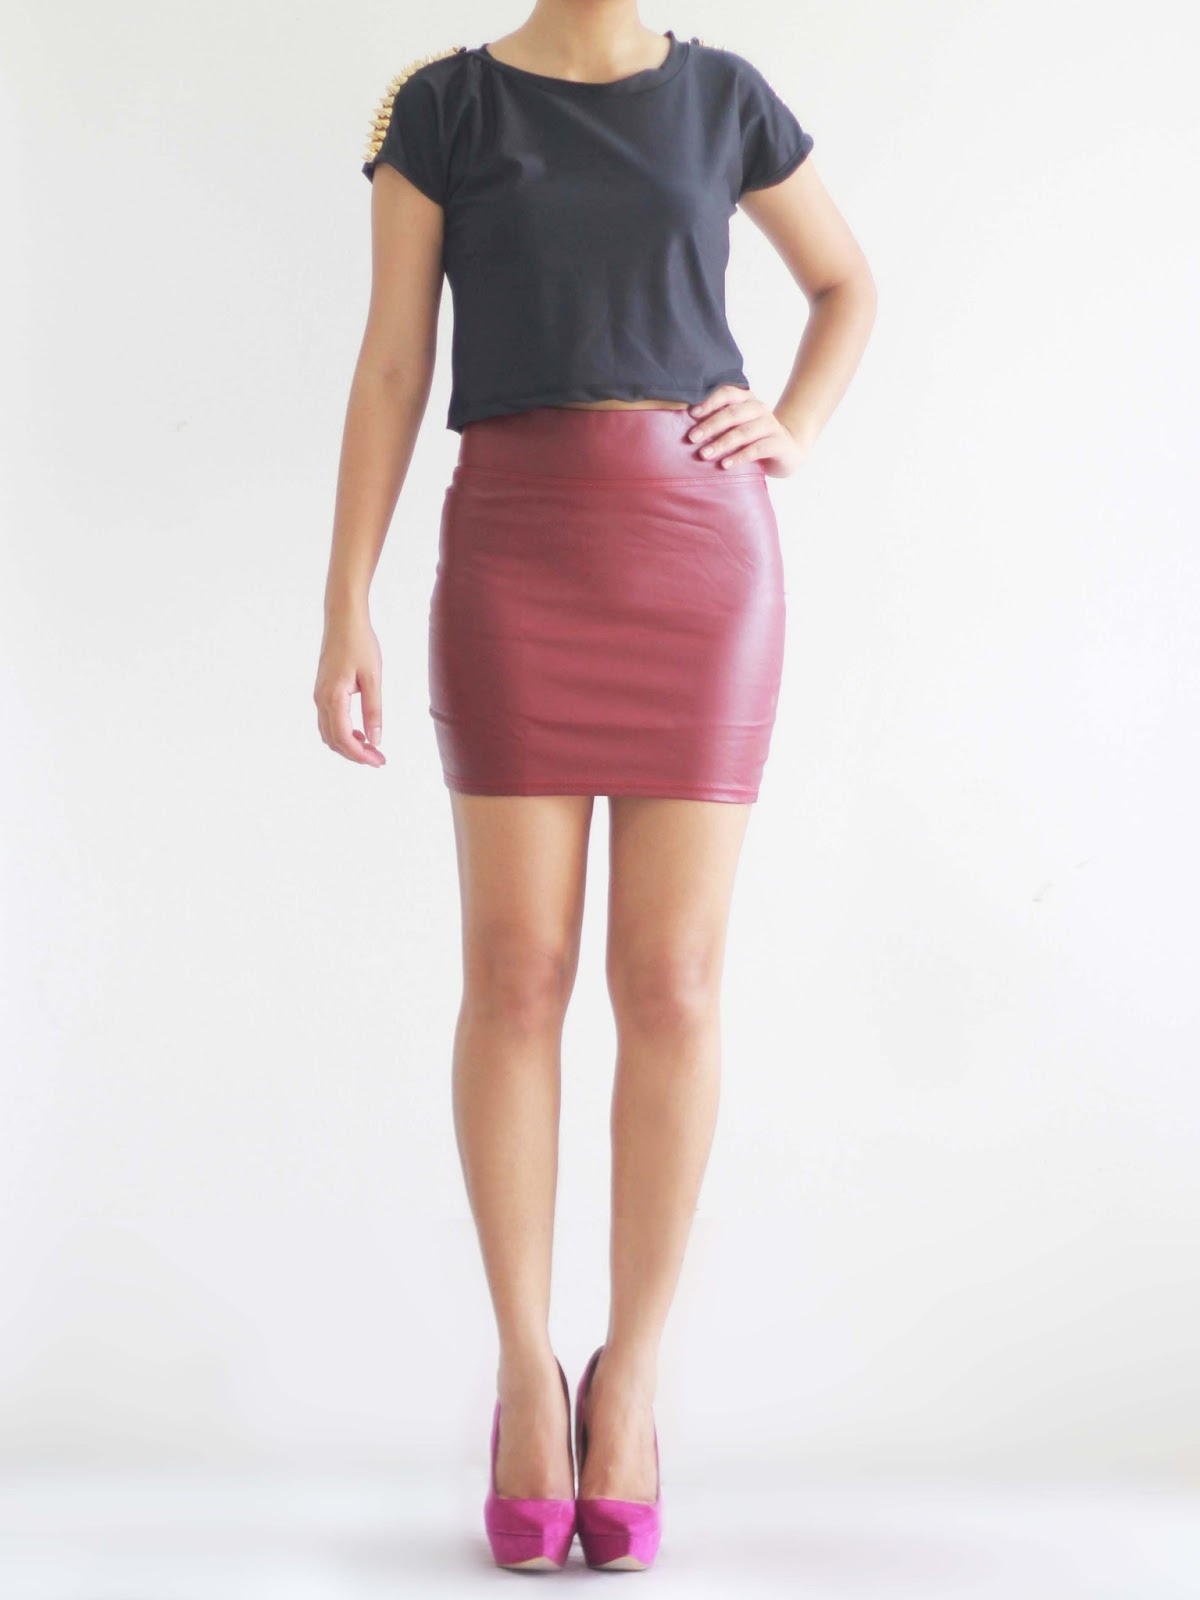 Shop Pingtr PU Leather Mini Skirt, Women Sexy Leather High Waist Pencil Skirt Bodycon Slim Short Mini Skirt. Free delivery and returns on eligible orders.5/5.